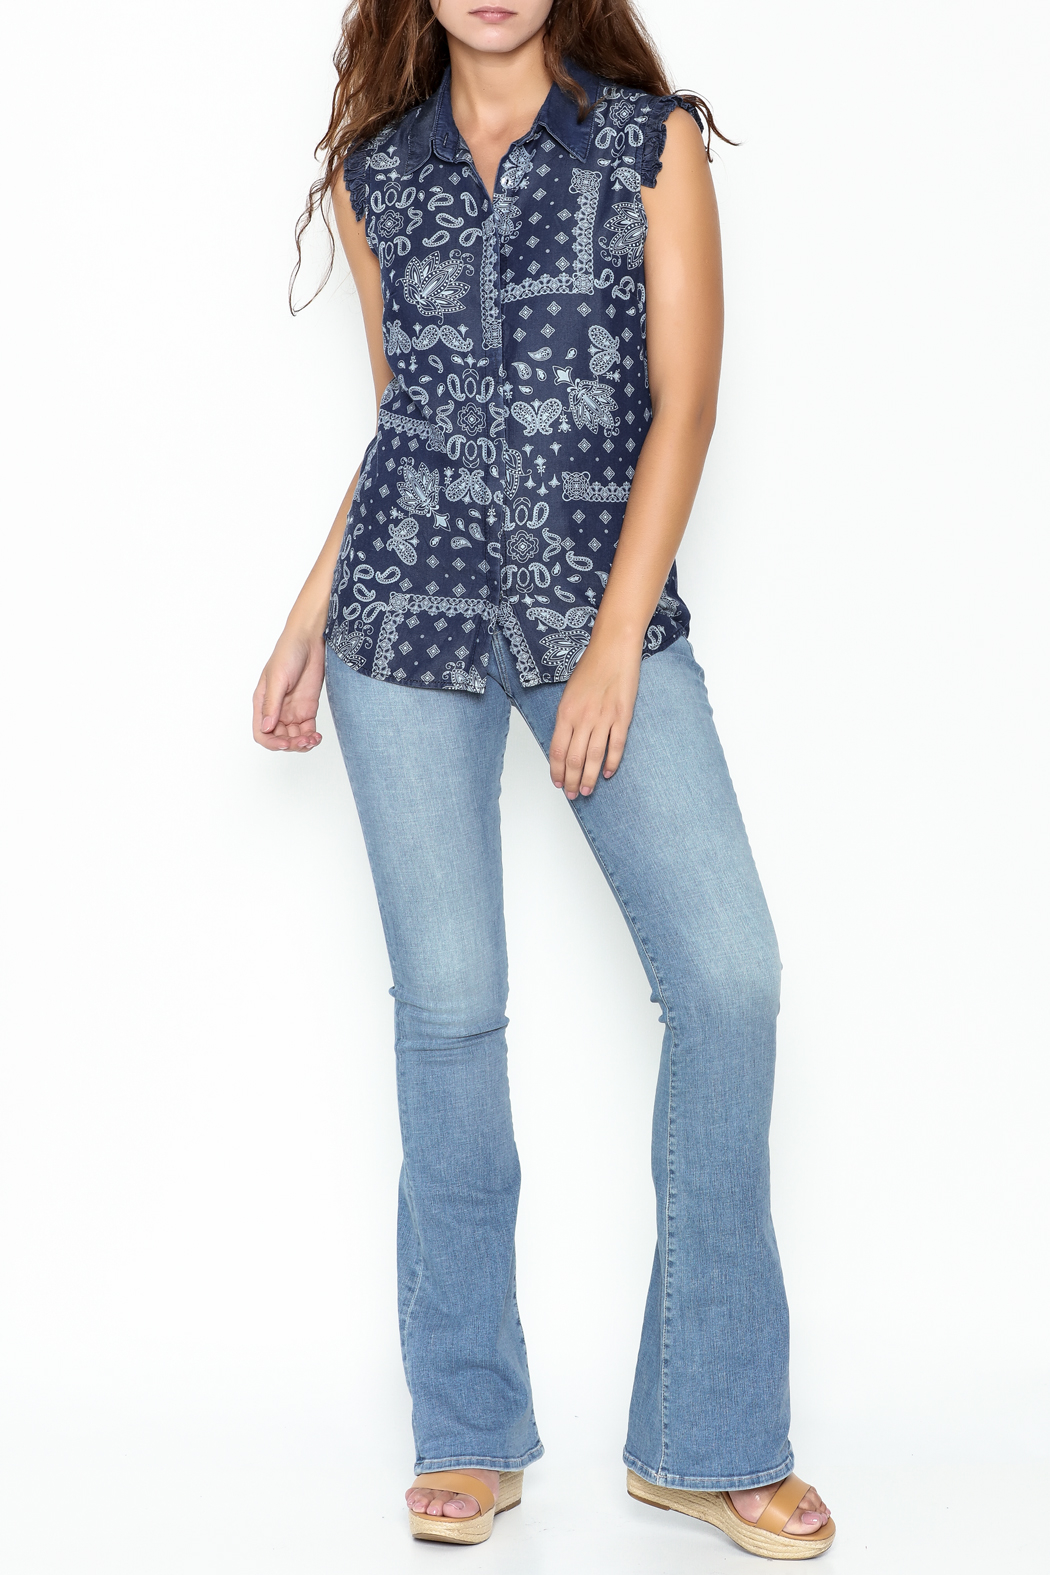 Marvy Fashion Printed Jean Top - Side Cropped Image